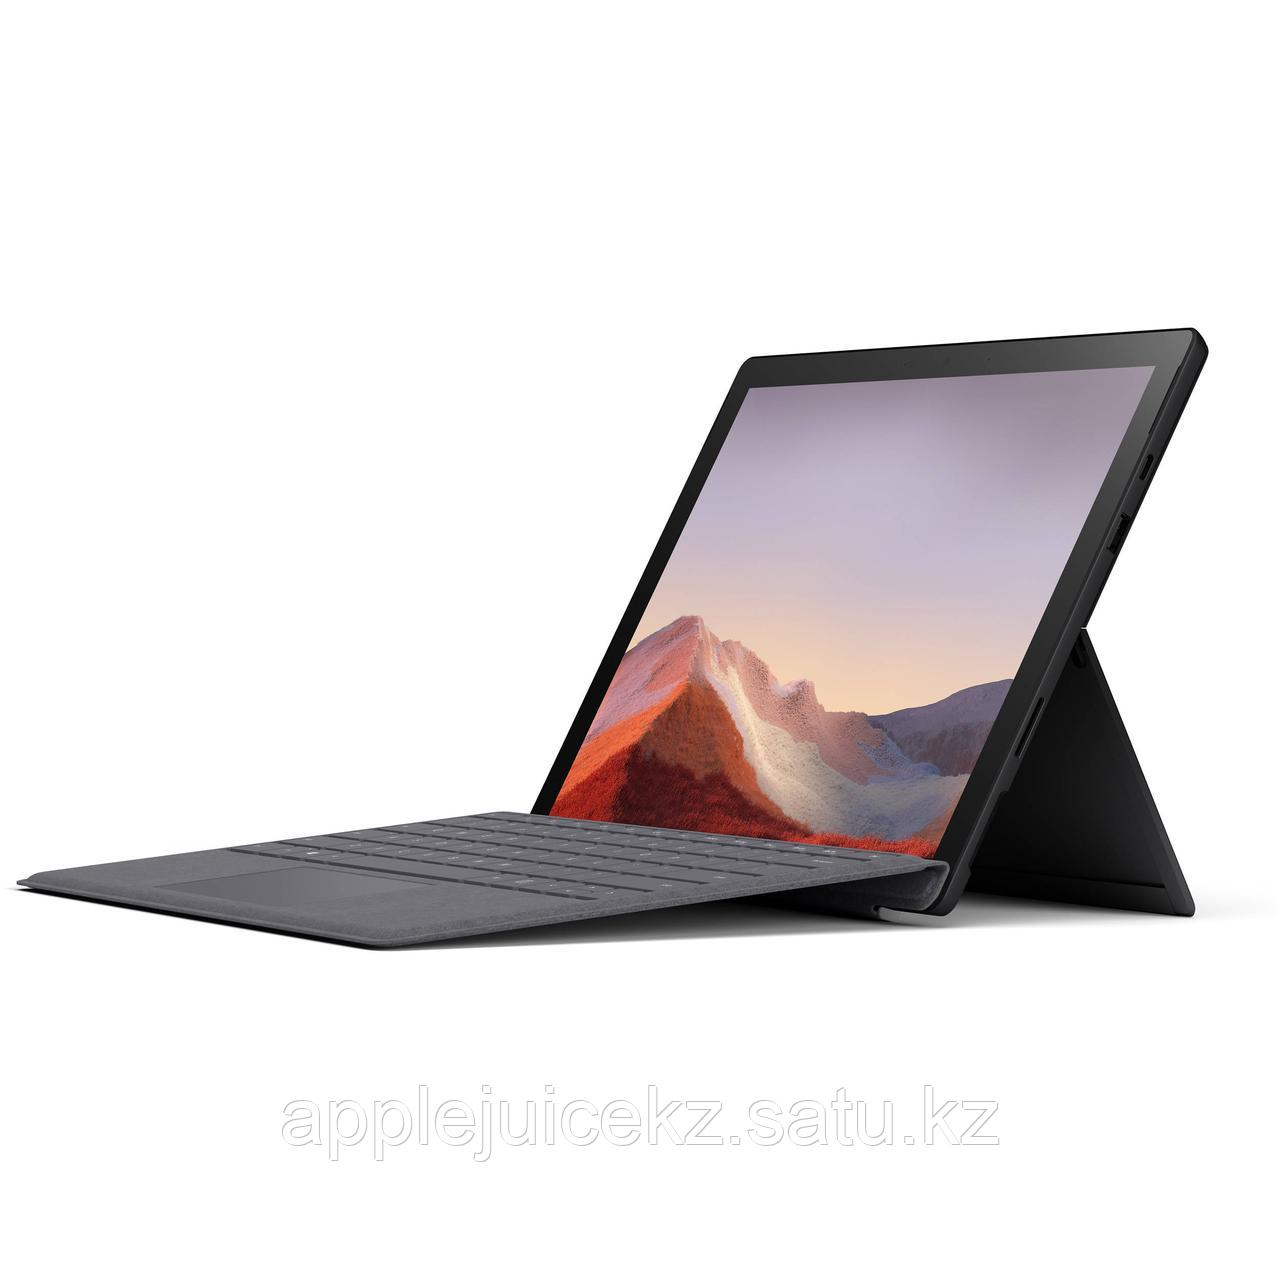 Surface Pro 7 Black, Intel Core i5, 8GB, 256GB